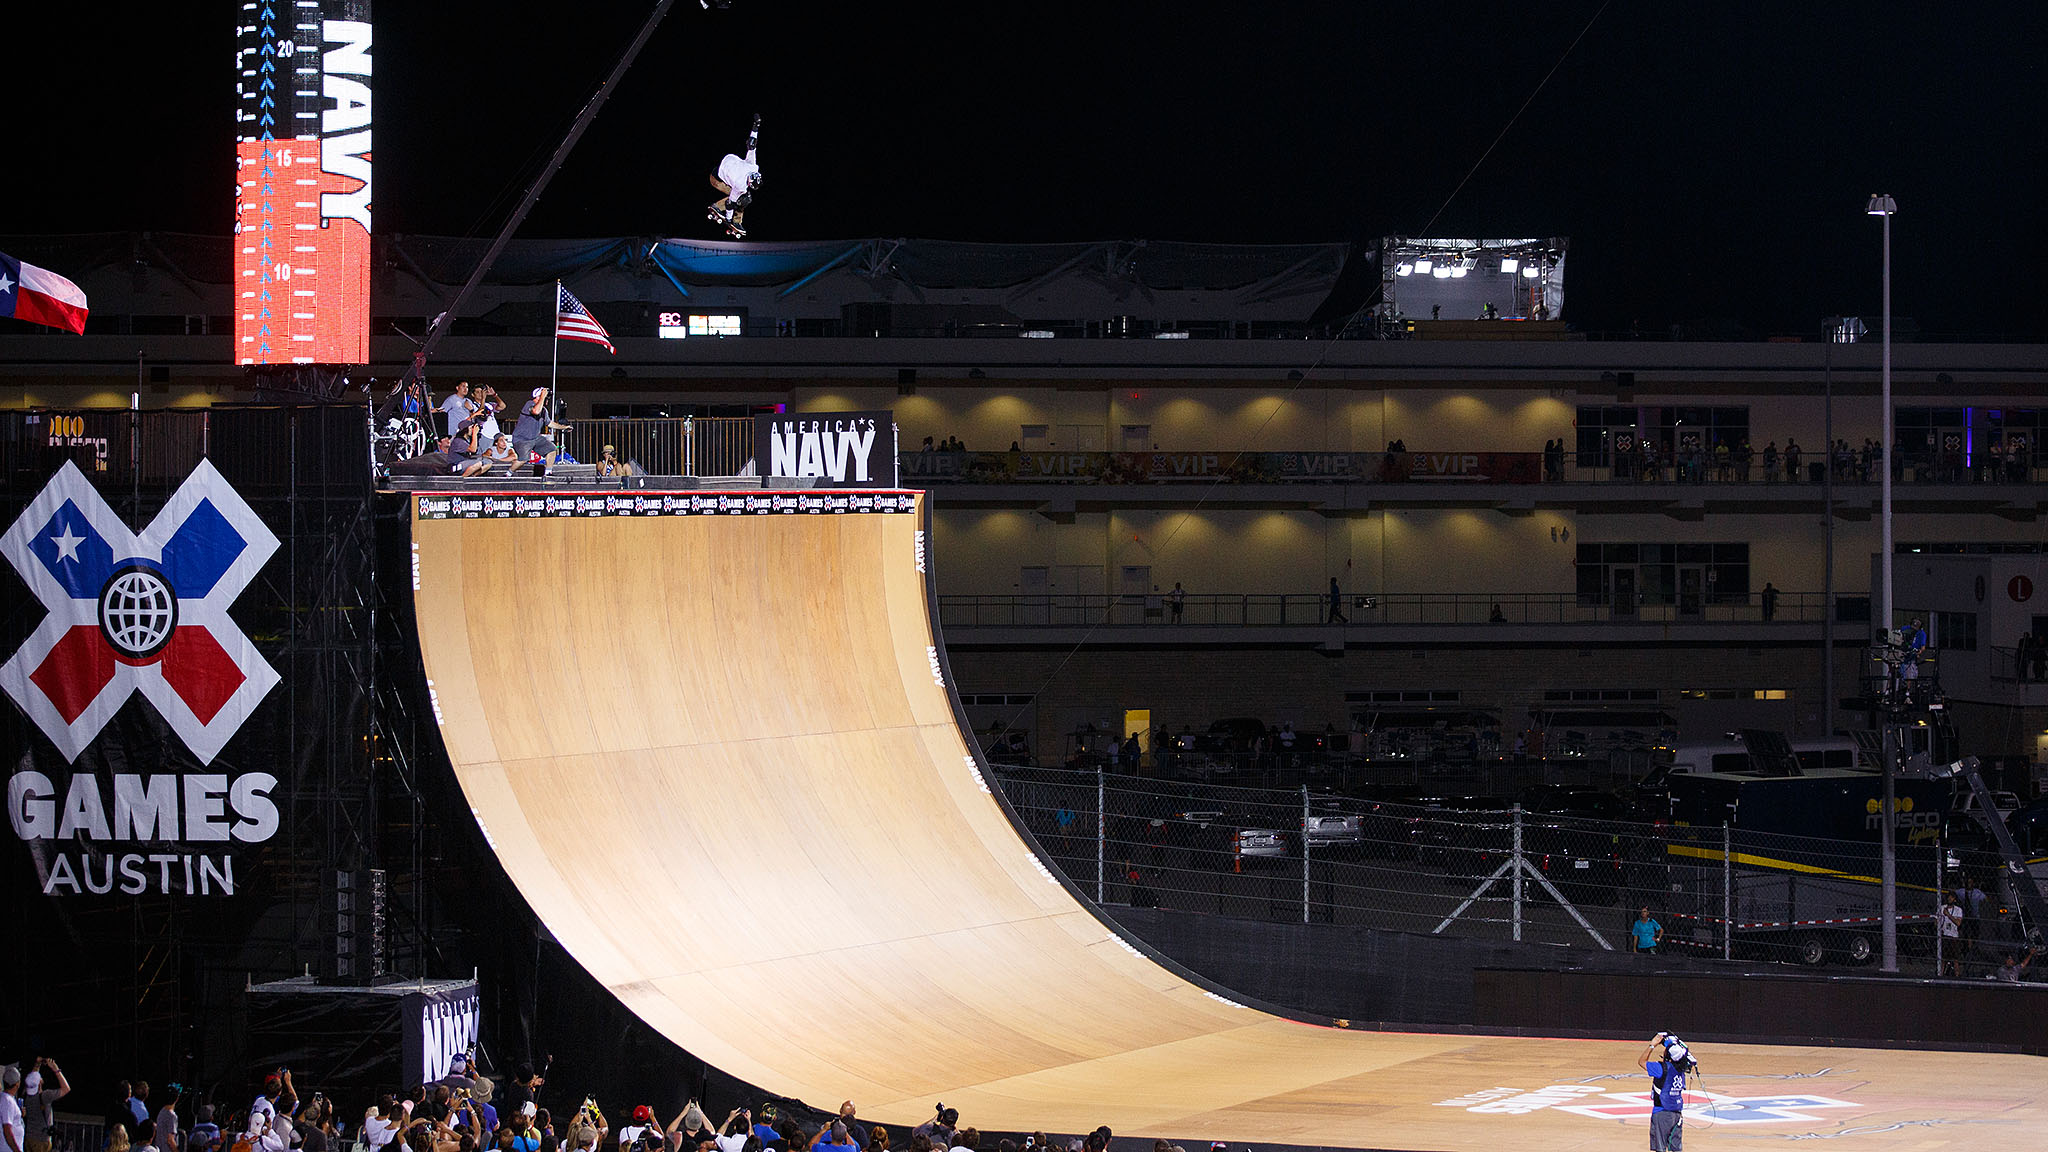 America's Navy Skateboard Big Air closed down an action-packed Friday night on Day 2 of X Games Austin 2015. Of the 10 competitors -- four of them teenagers -- who took to the MegaRamp, all had what it took to podium, but MegaRamp godfather Bob Burnquist claimed the gold in the end. It was his eighth Big Air gold, and his 28th career X Games medal.